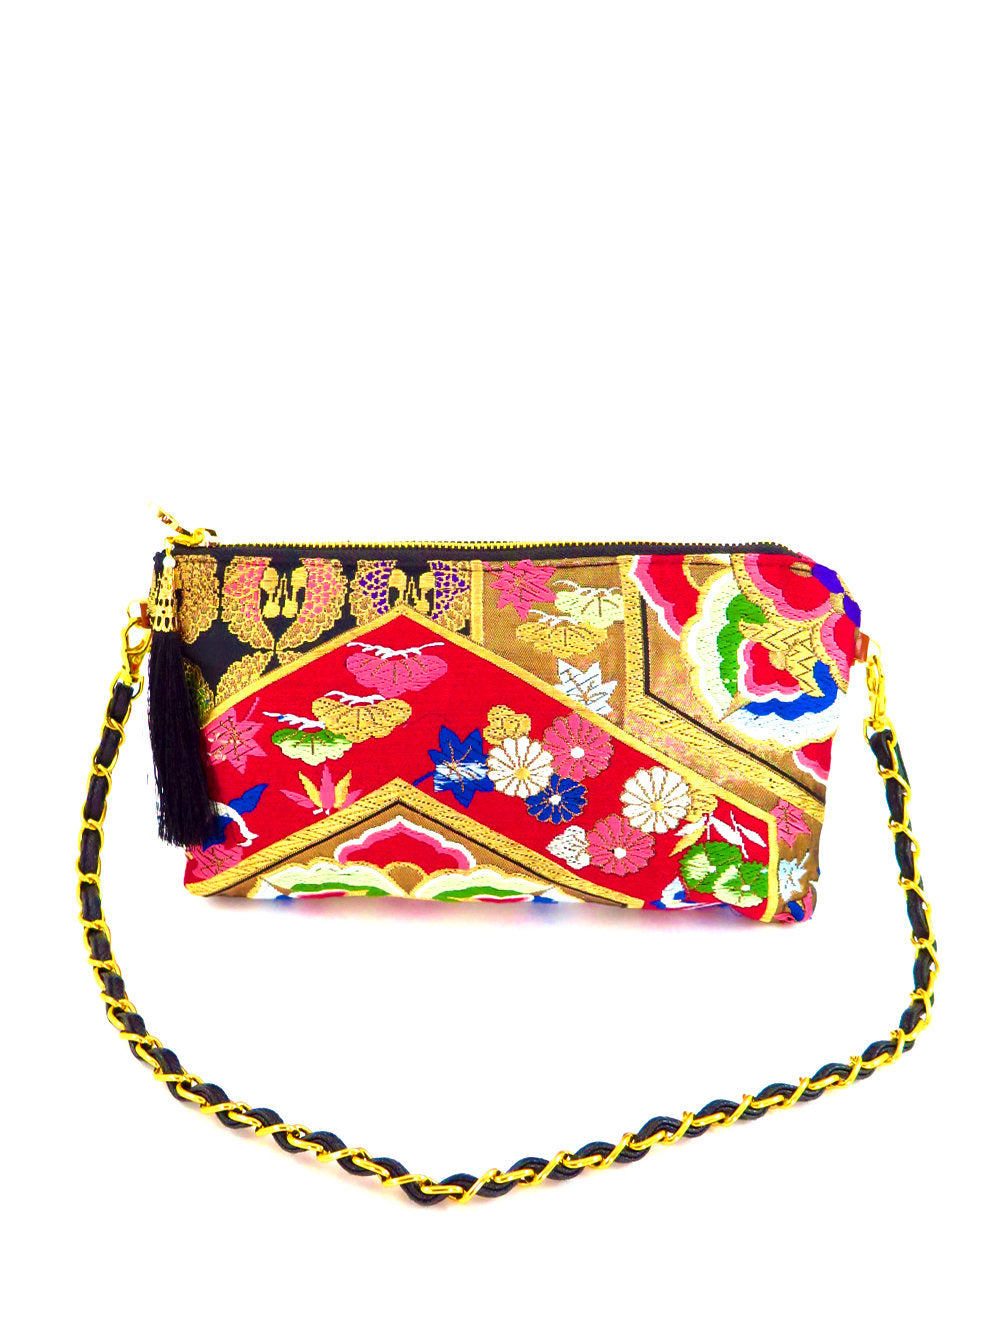 "Japanese Kimono Obi Fabric ""Asian Red Gold""_ Evening Shoulder Bag_ Removable Chain Style_Party Bag"